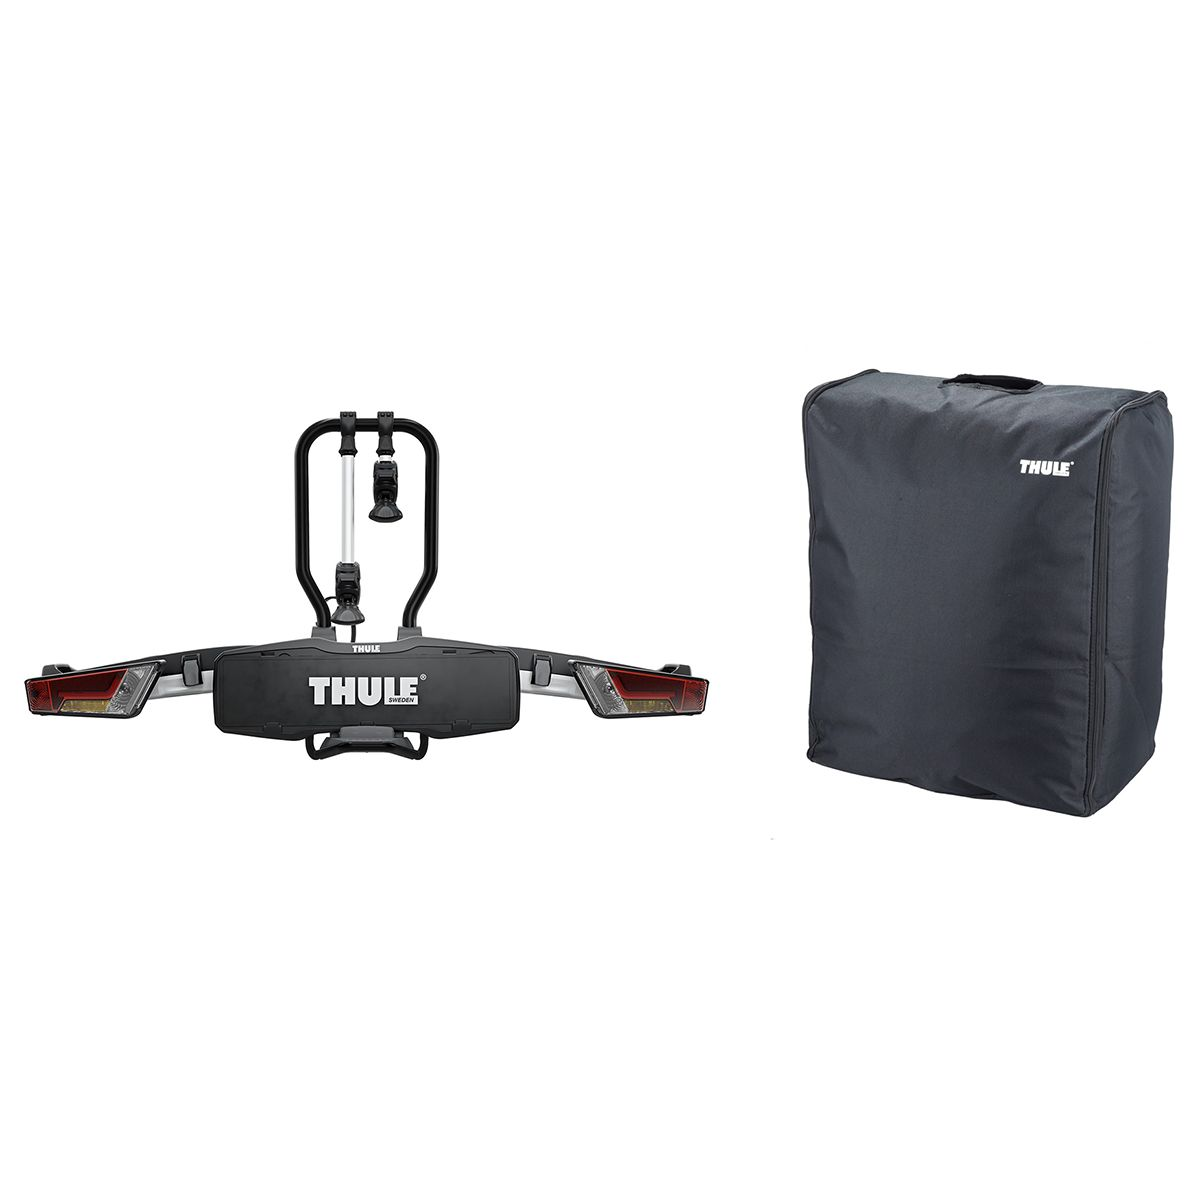 Set offer Thule Easyfold XT 933 bike rack + carrying bag 931-1